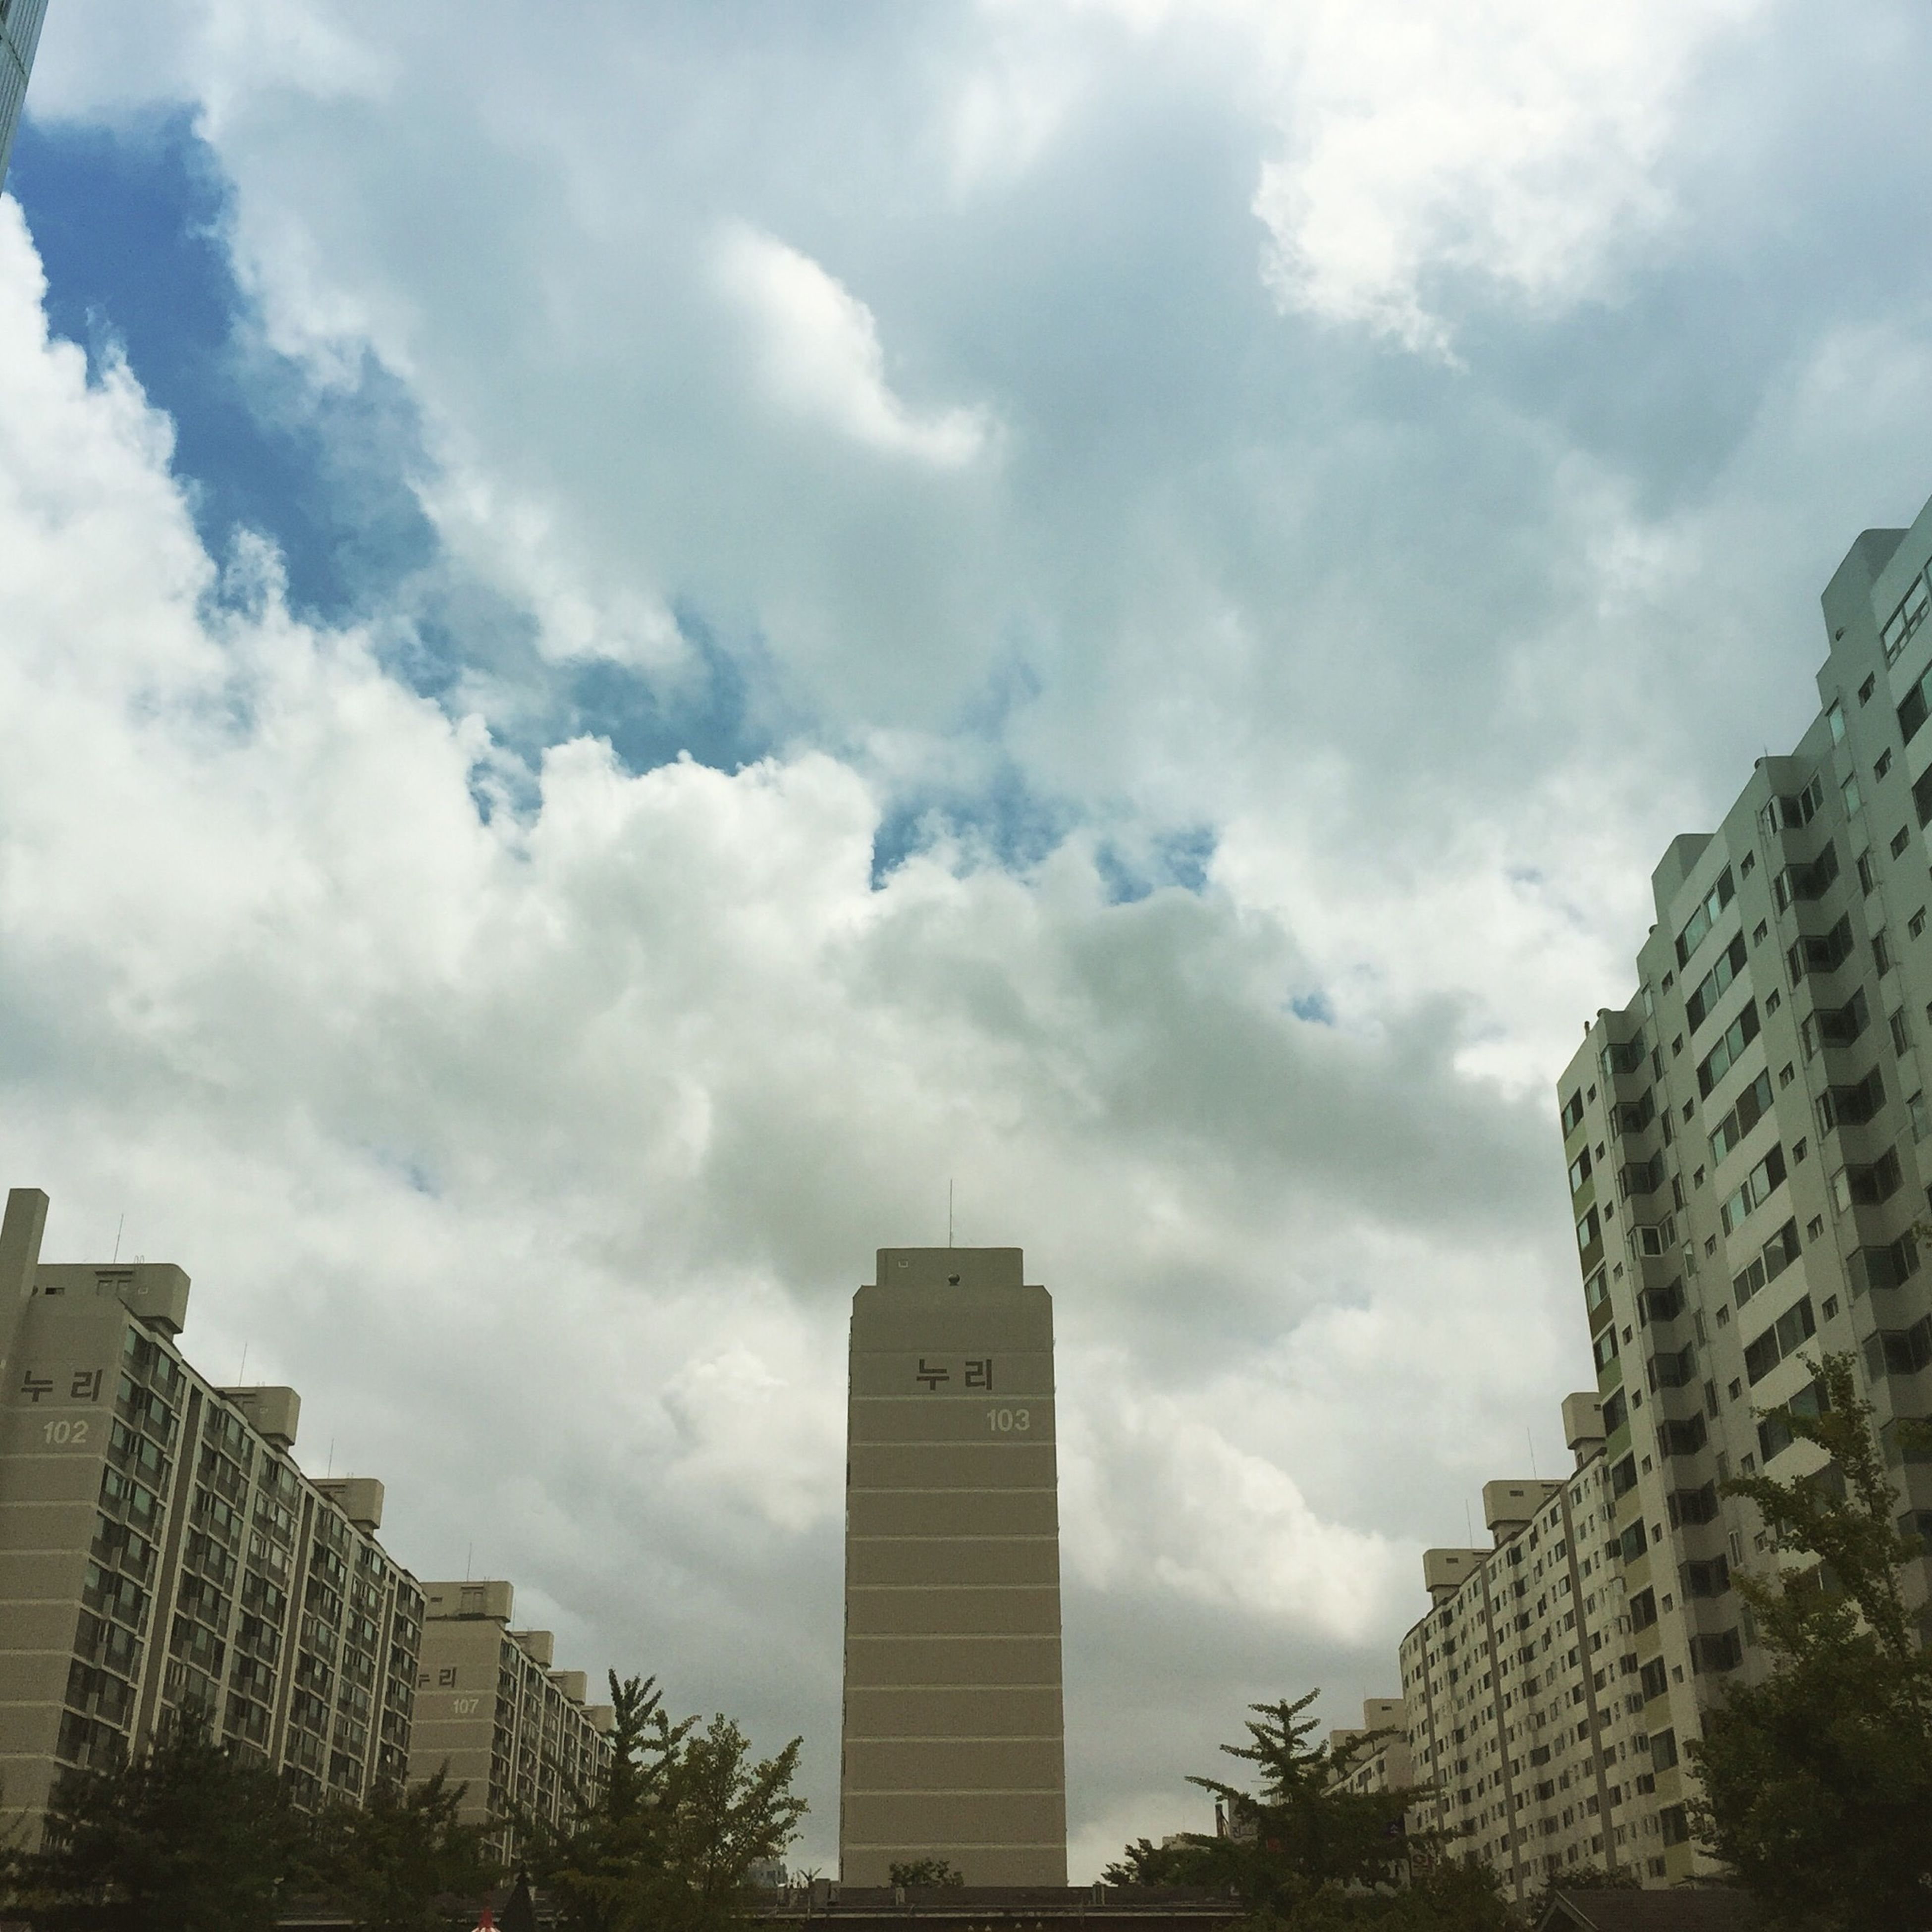 building exterior, architecture, built structure, sky, city, cloud - sky, skyscraper, low angle view, cloudy, tall - high, modern, office building, tower, cloud, building, day, outdoors, tall, city life, weather